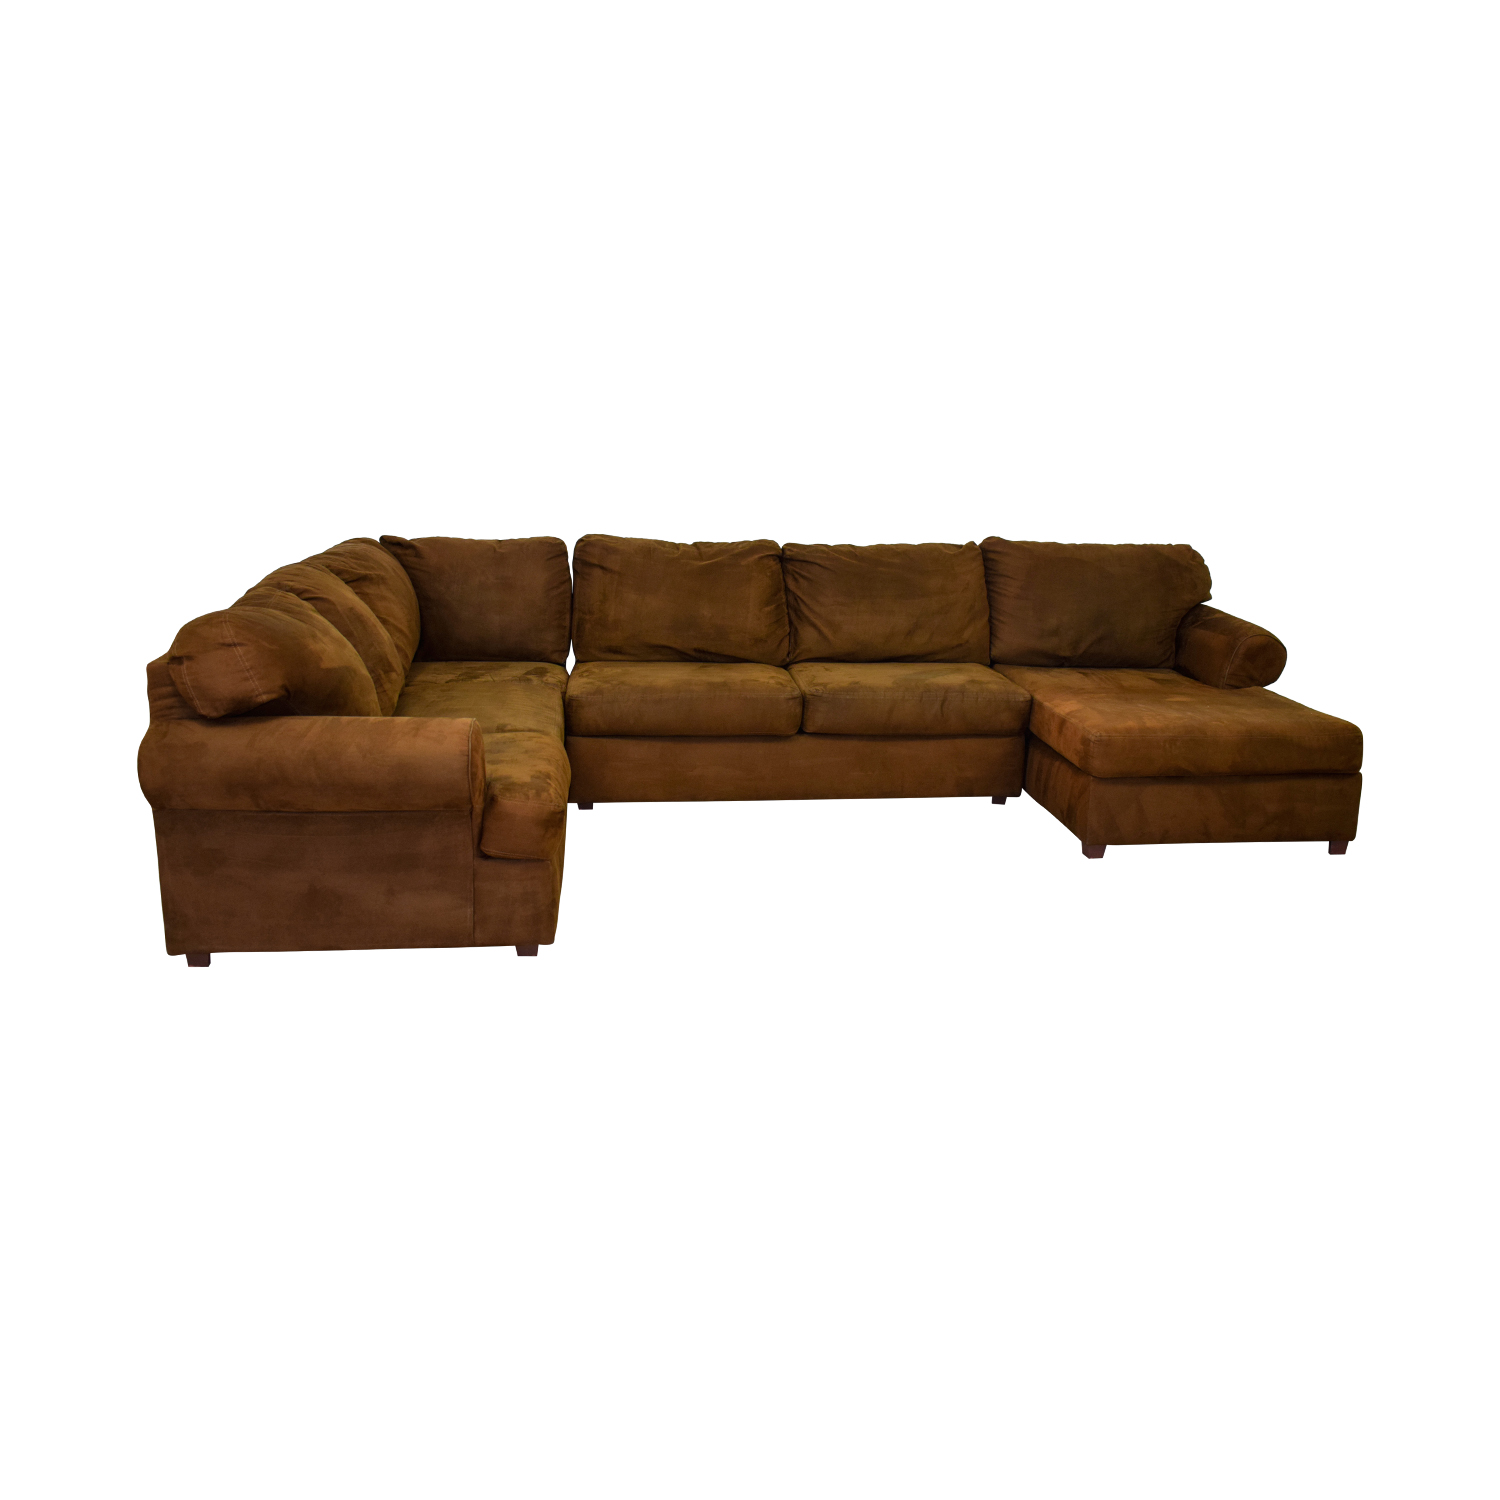 Jennifer Furniture Jennifer Furniture Chocolate Brown L-Shaped Chaise Sectional price